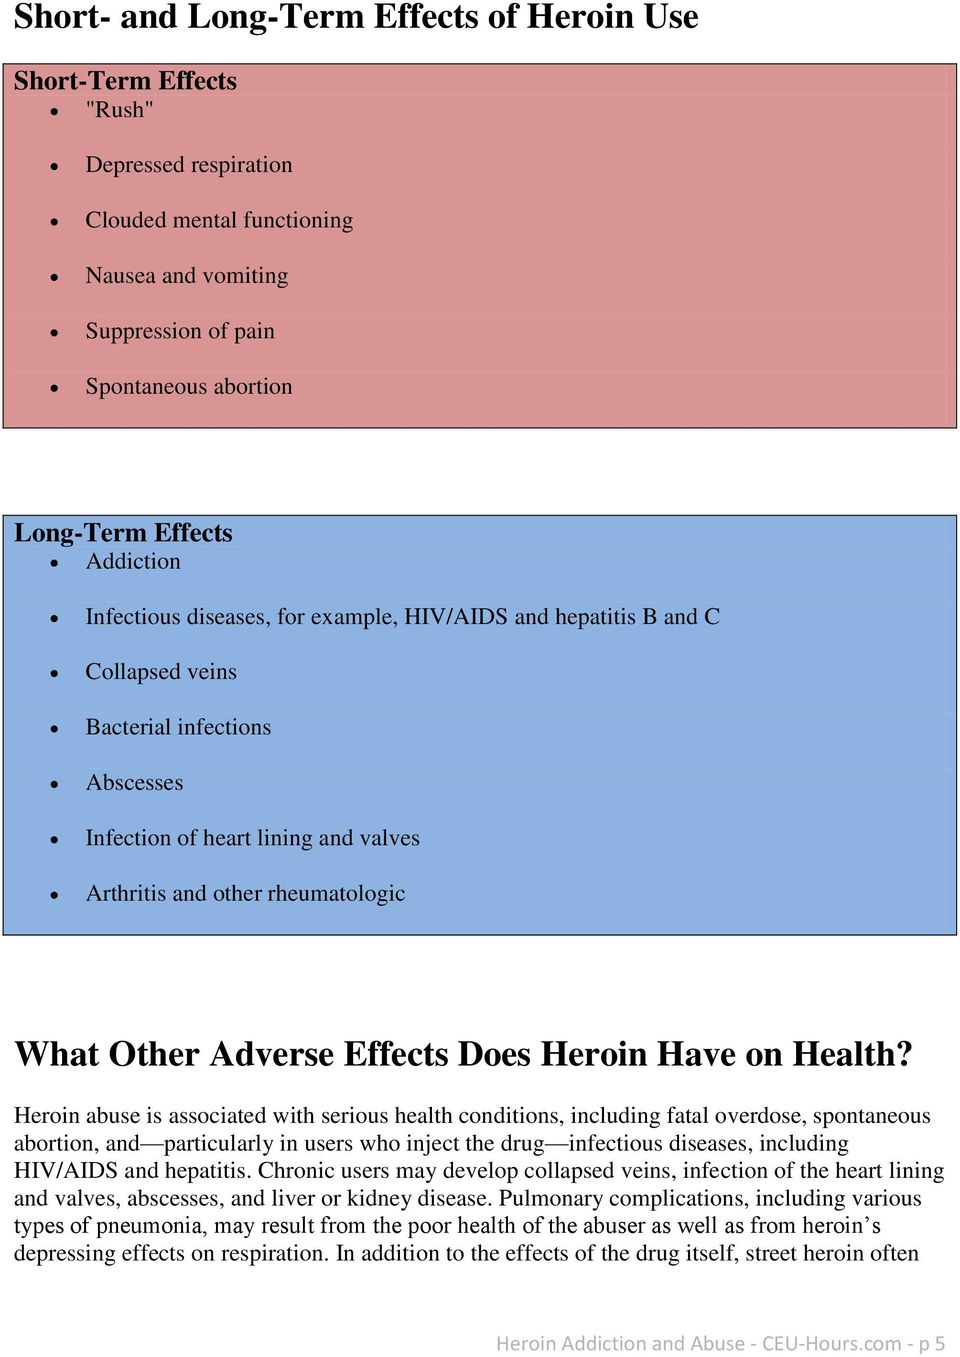 Other Adverse Effects Does Heroin Have on Health?